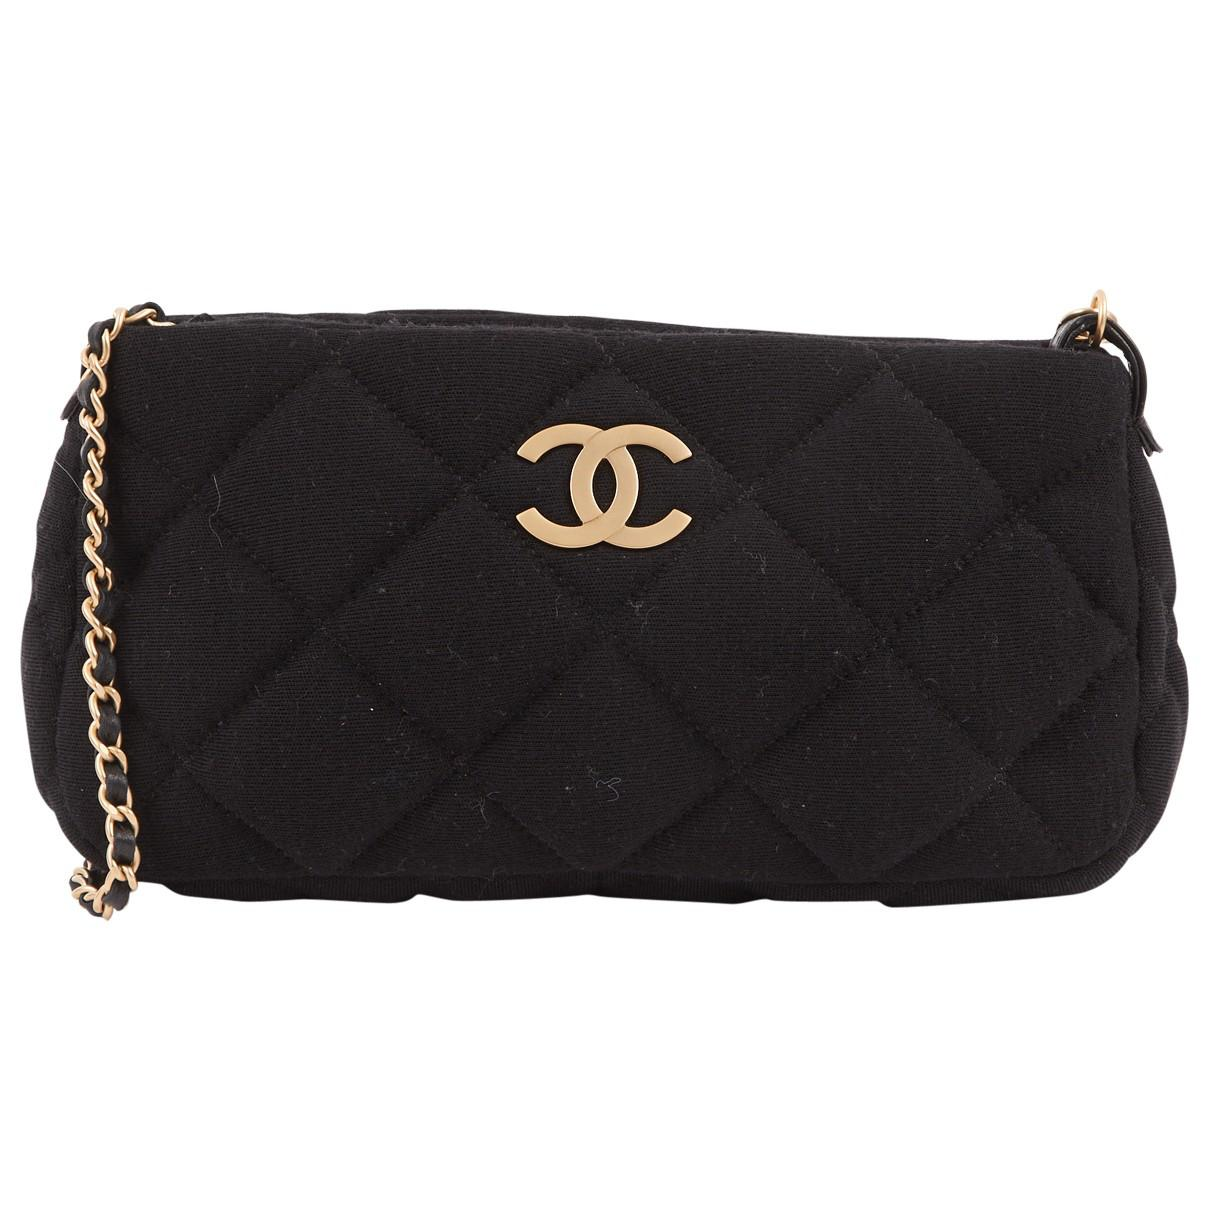 Pre-owned - Cloth mini bag Chanel AaHJX